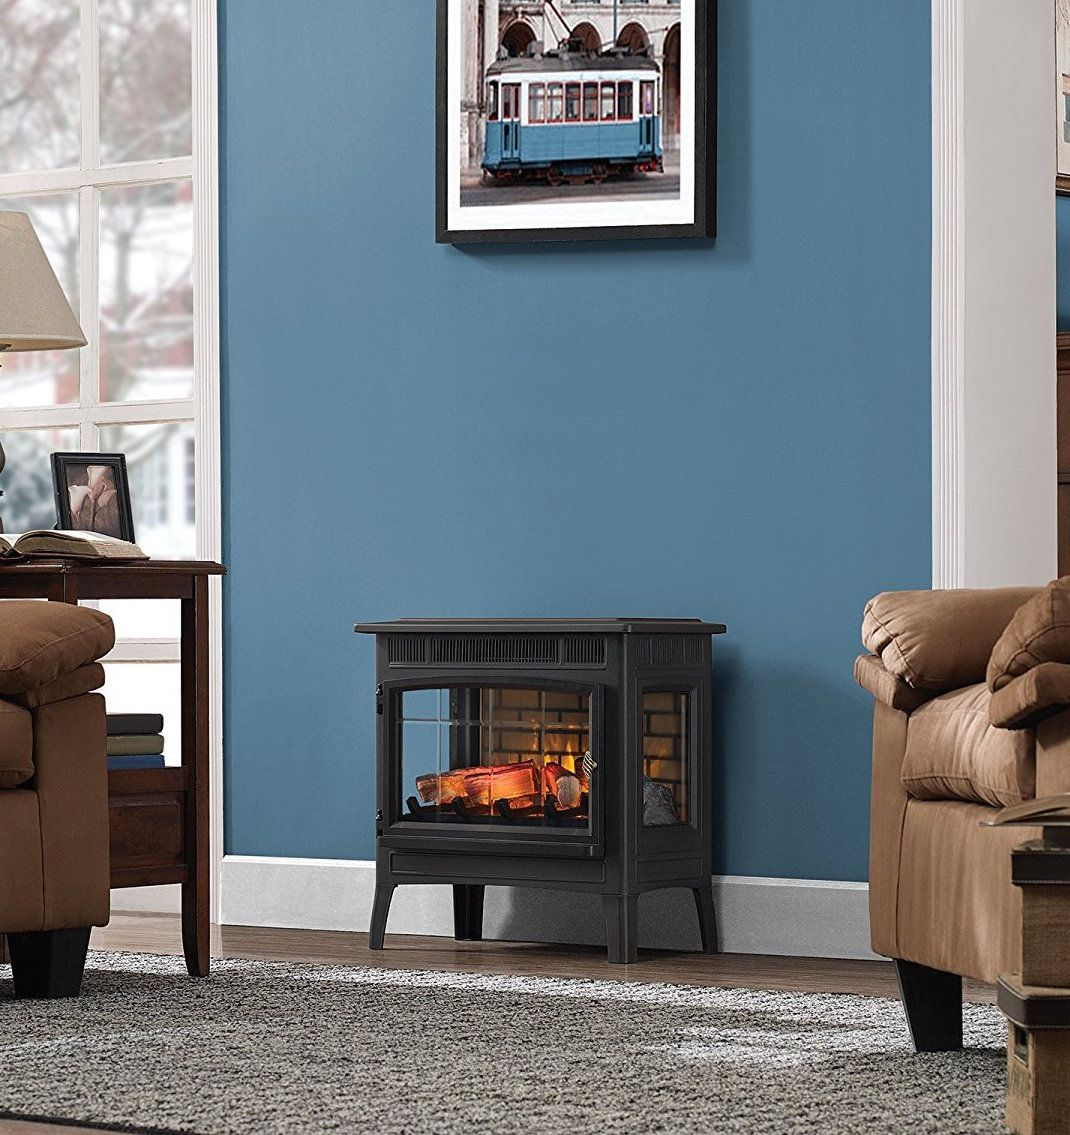 Duraflame Dfi 5010 01 Infrared Quartz Fireplace Stove With 3d